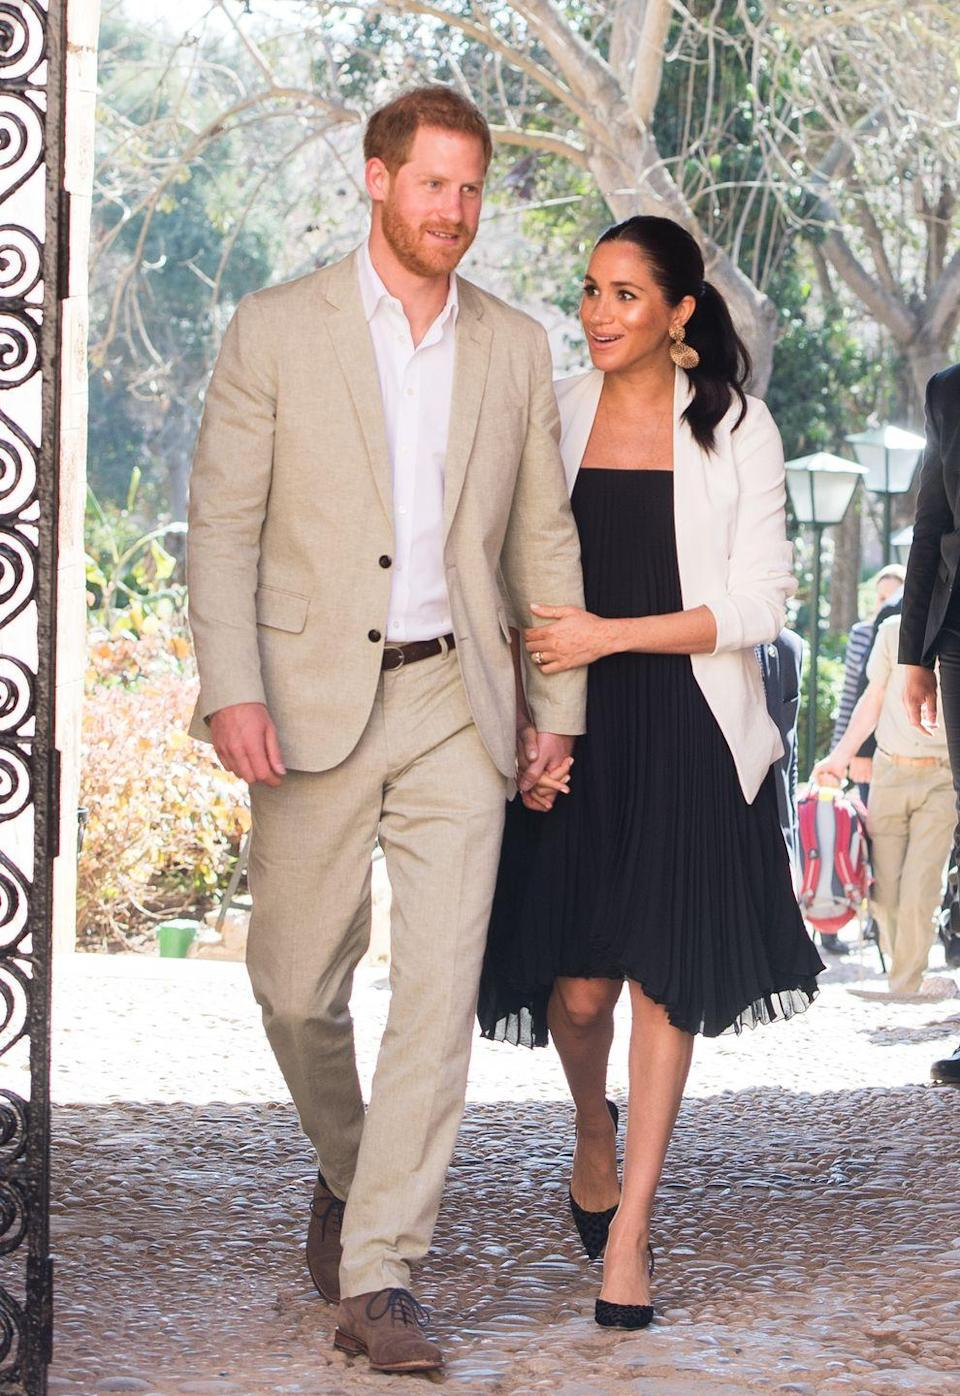 <p>Harry and Meghan walked through the Andalusian Gardens in Rabat holding hands, with Meghan also holding onto her husband's arm. </p>